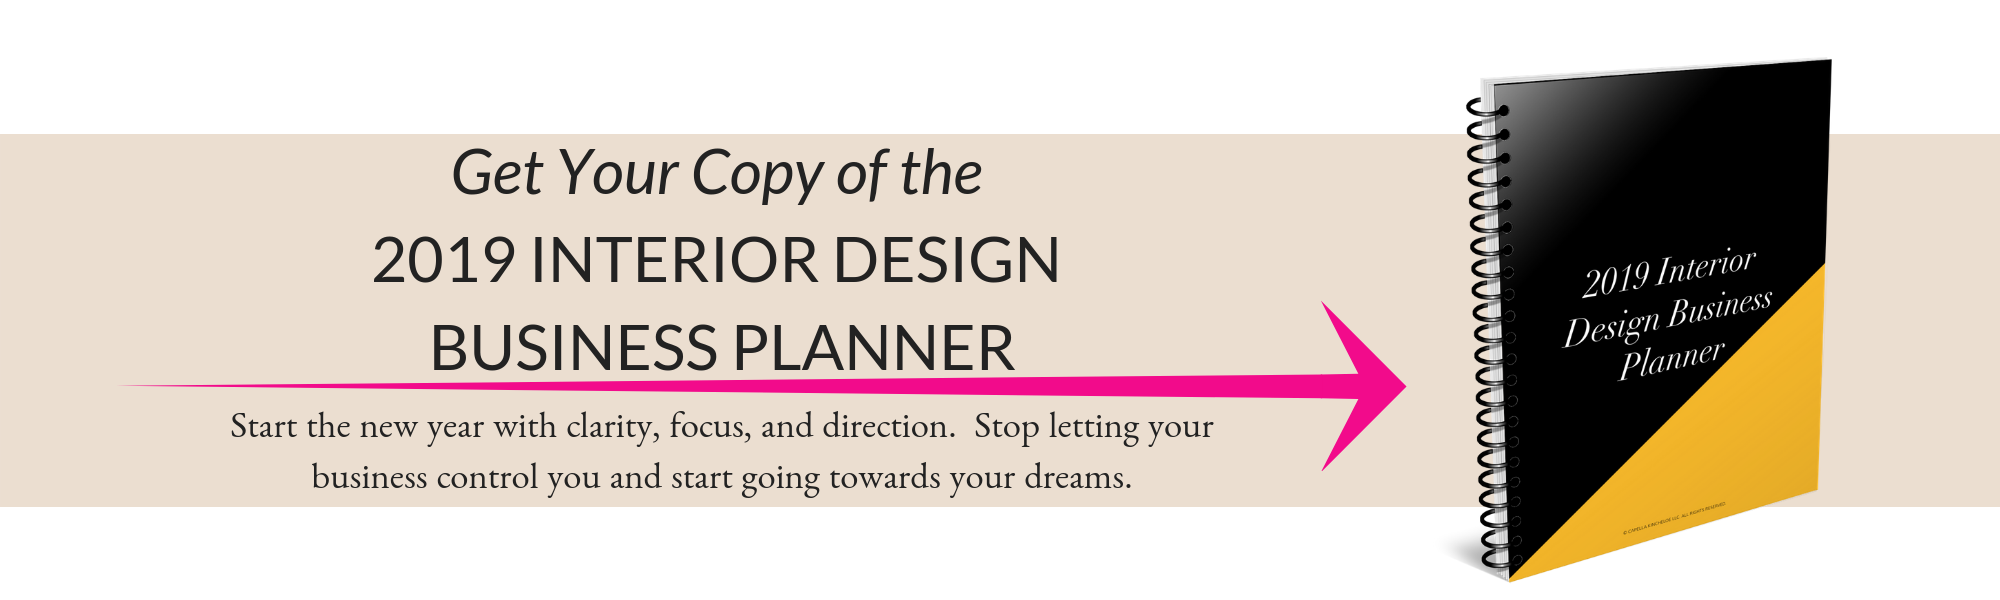 INterior Design Business PLanner #CKTRADESECRETS #INTERIORDESIGNBUSINESS #BUSINESSRESOLUTIONS